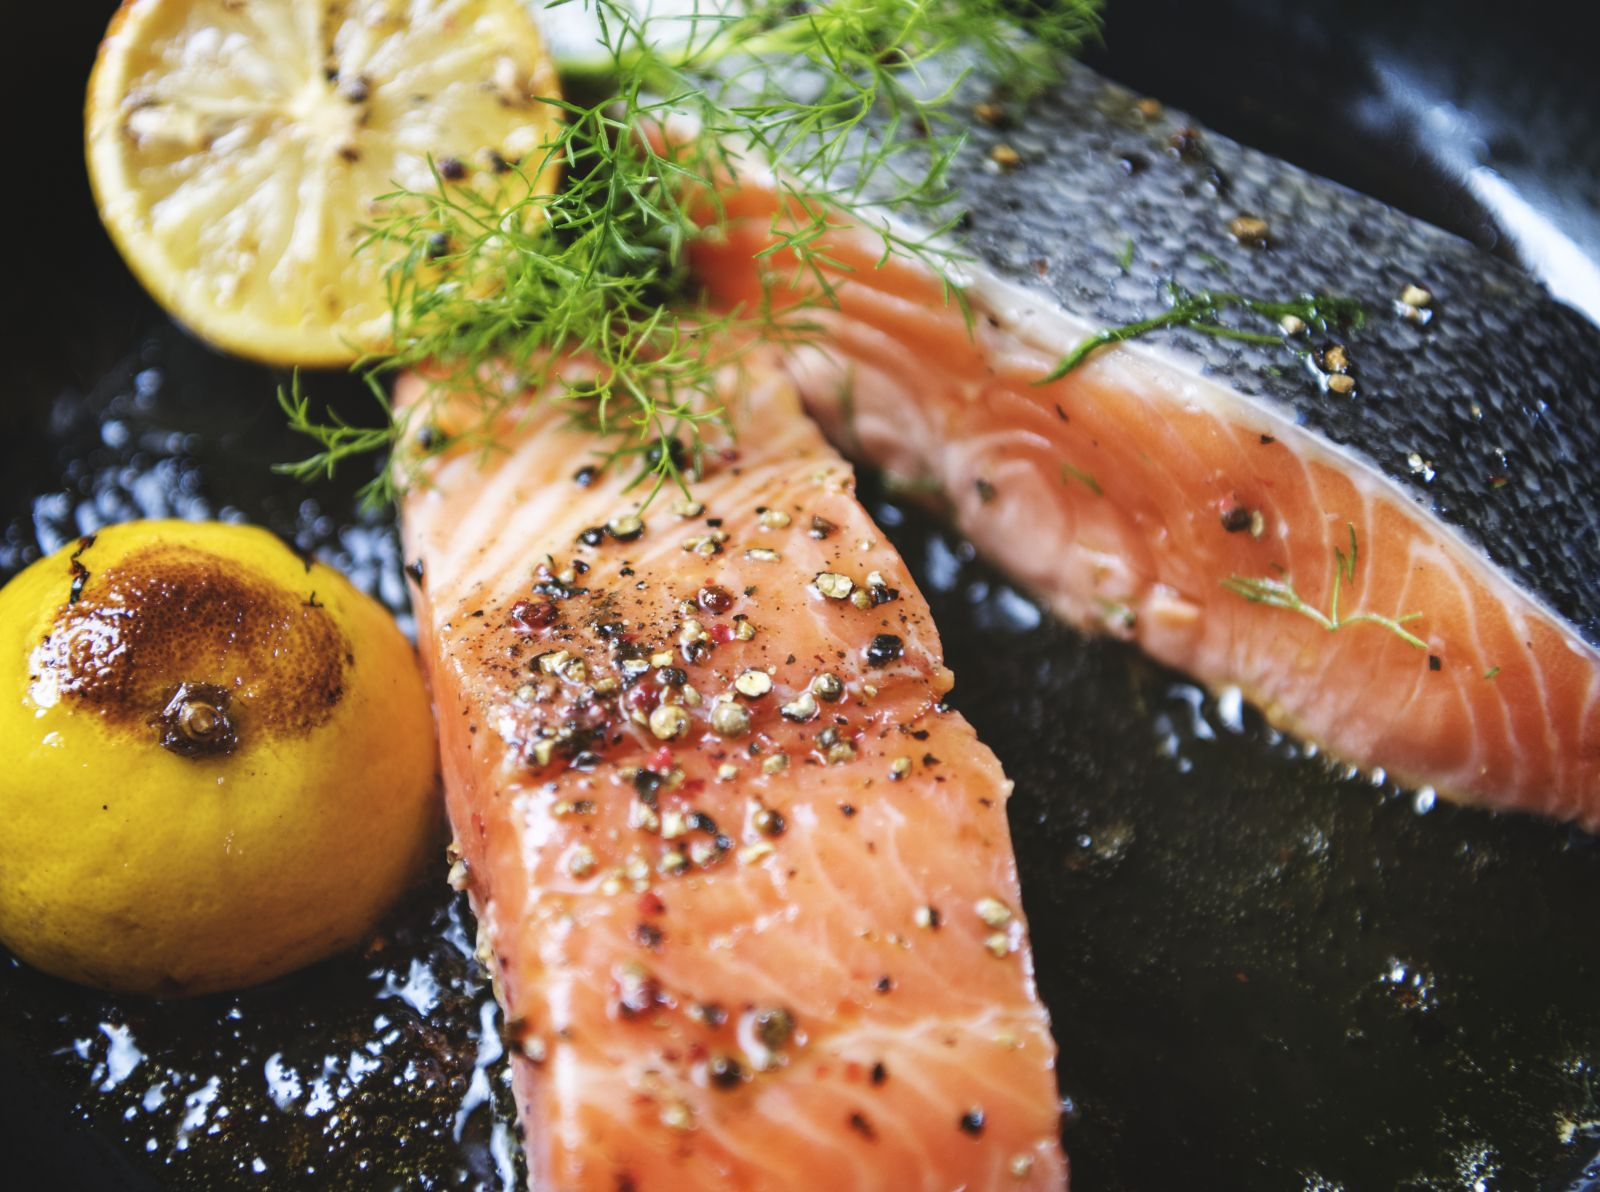 Salmon being cooked with lemon